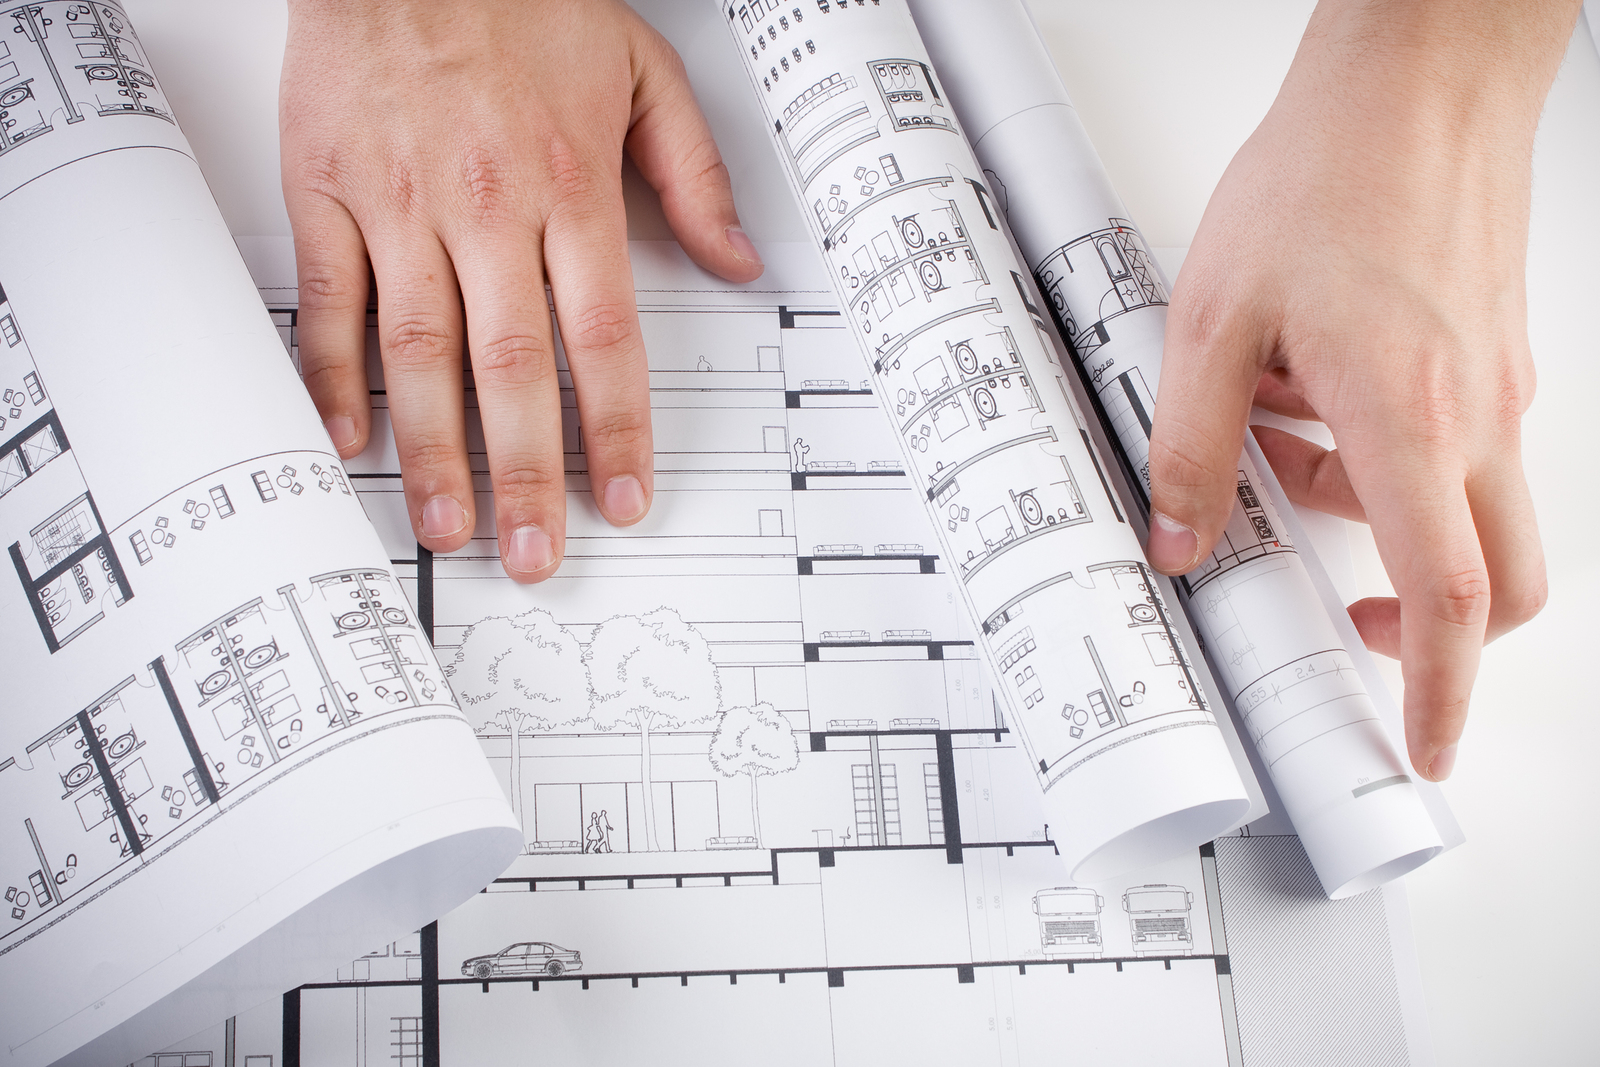 How to read blueprints pro construction guide for How to read construction blueprints